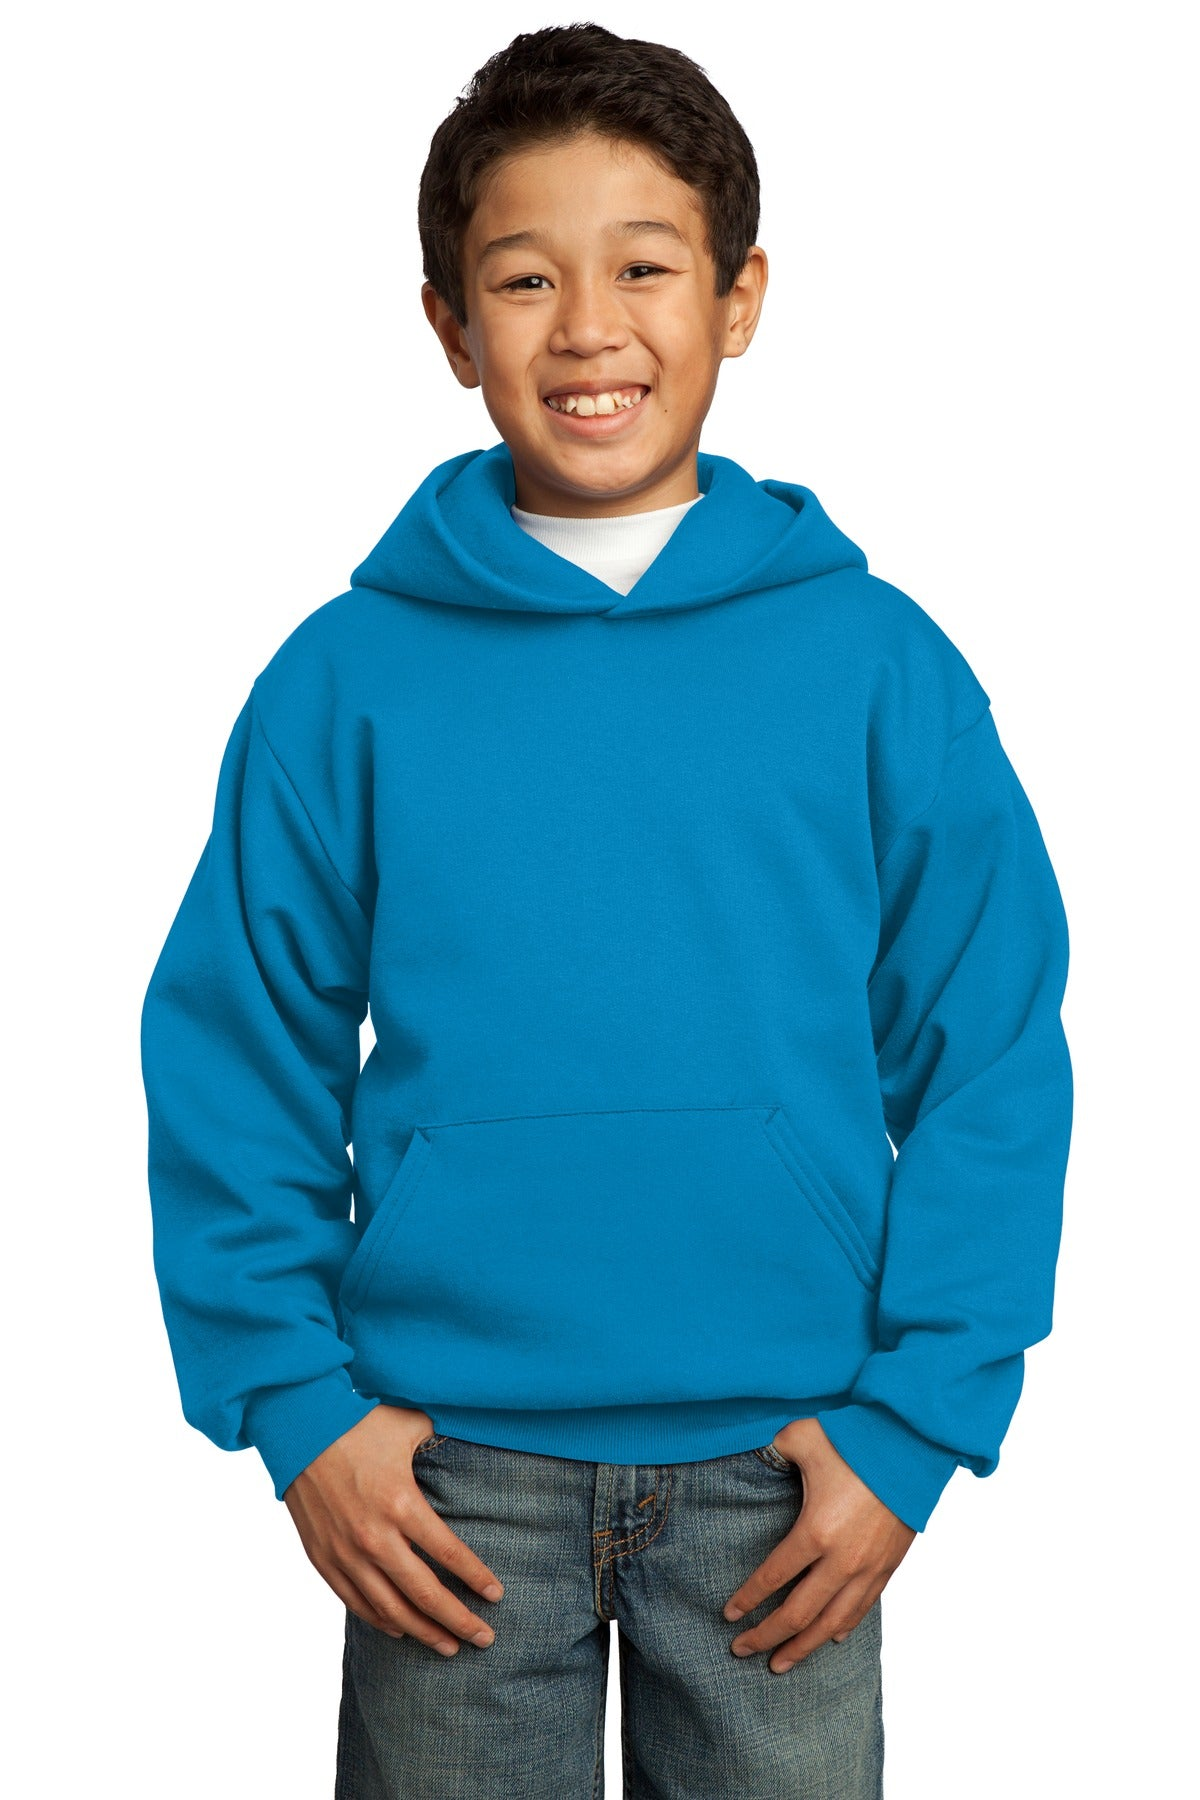 Sapphire Port & Company - Youth Core Fleece Pullover Hooded Sweatshirt.